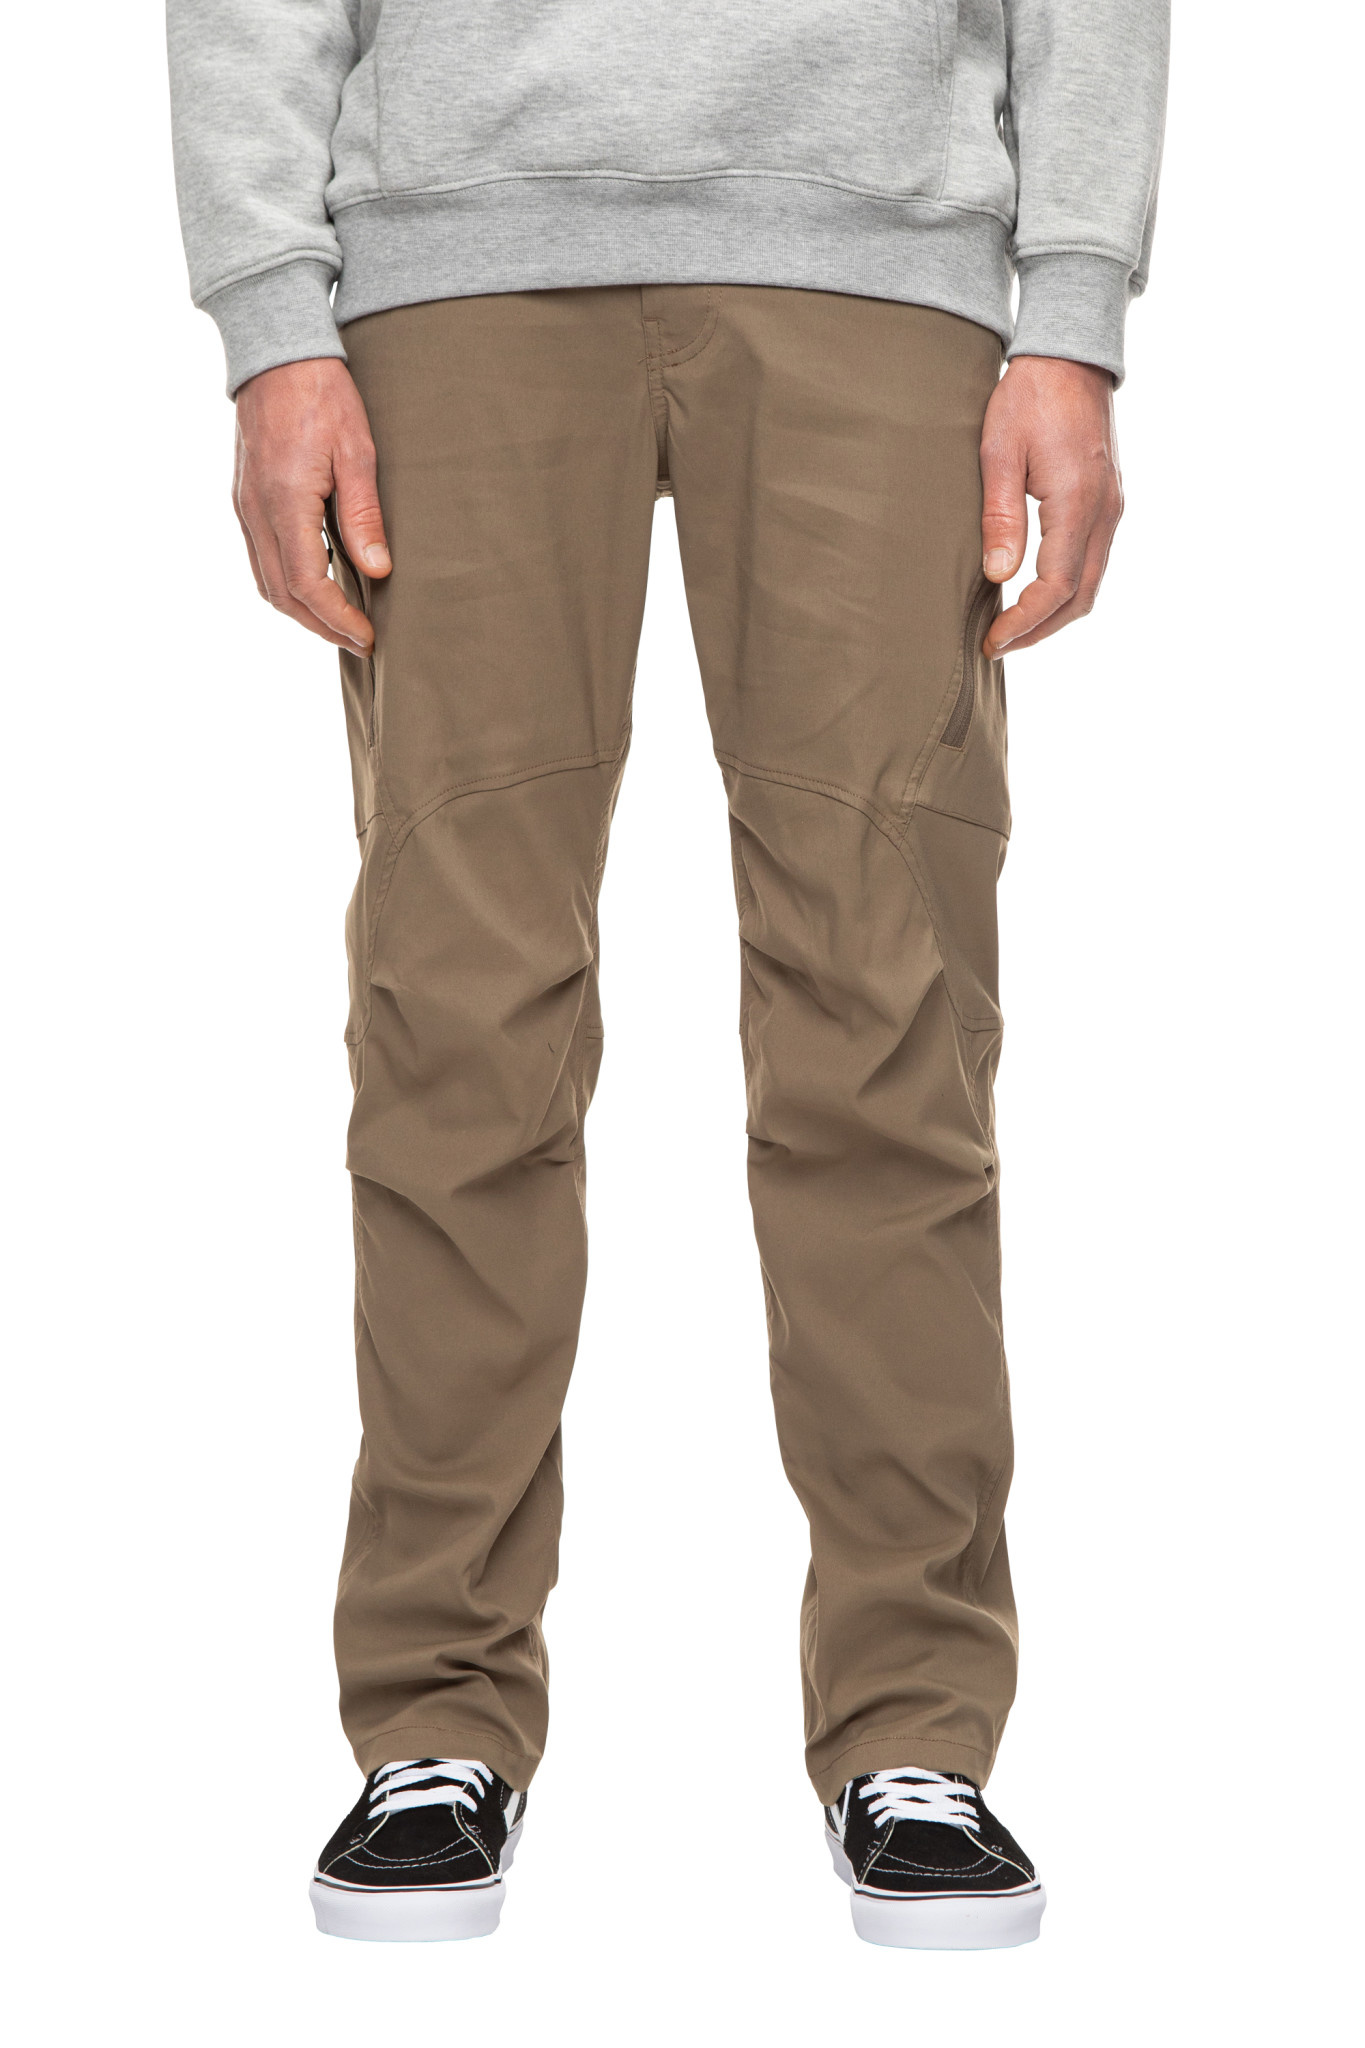 686 686 M's Anything Multi Cargo Pant - Relaxed